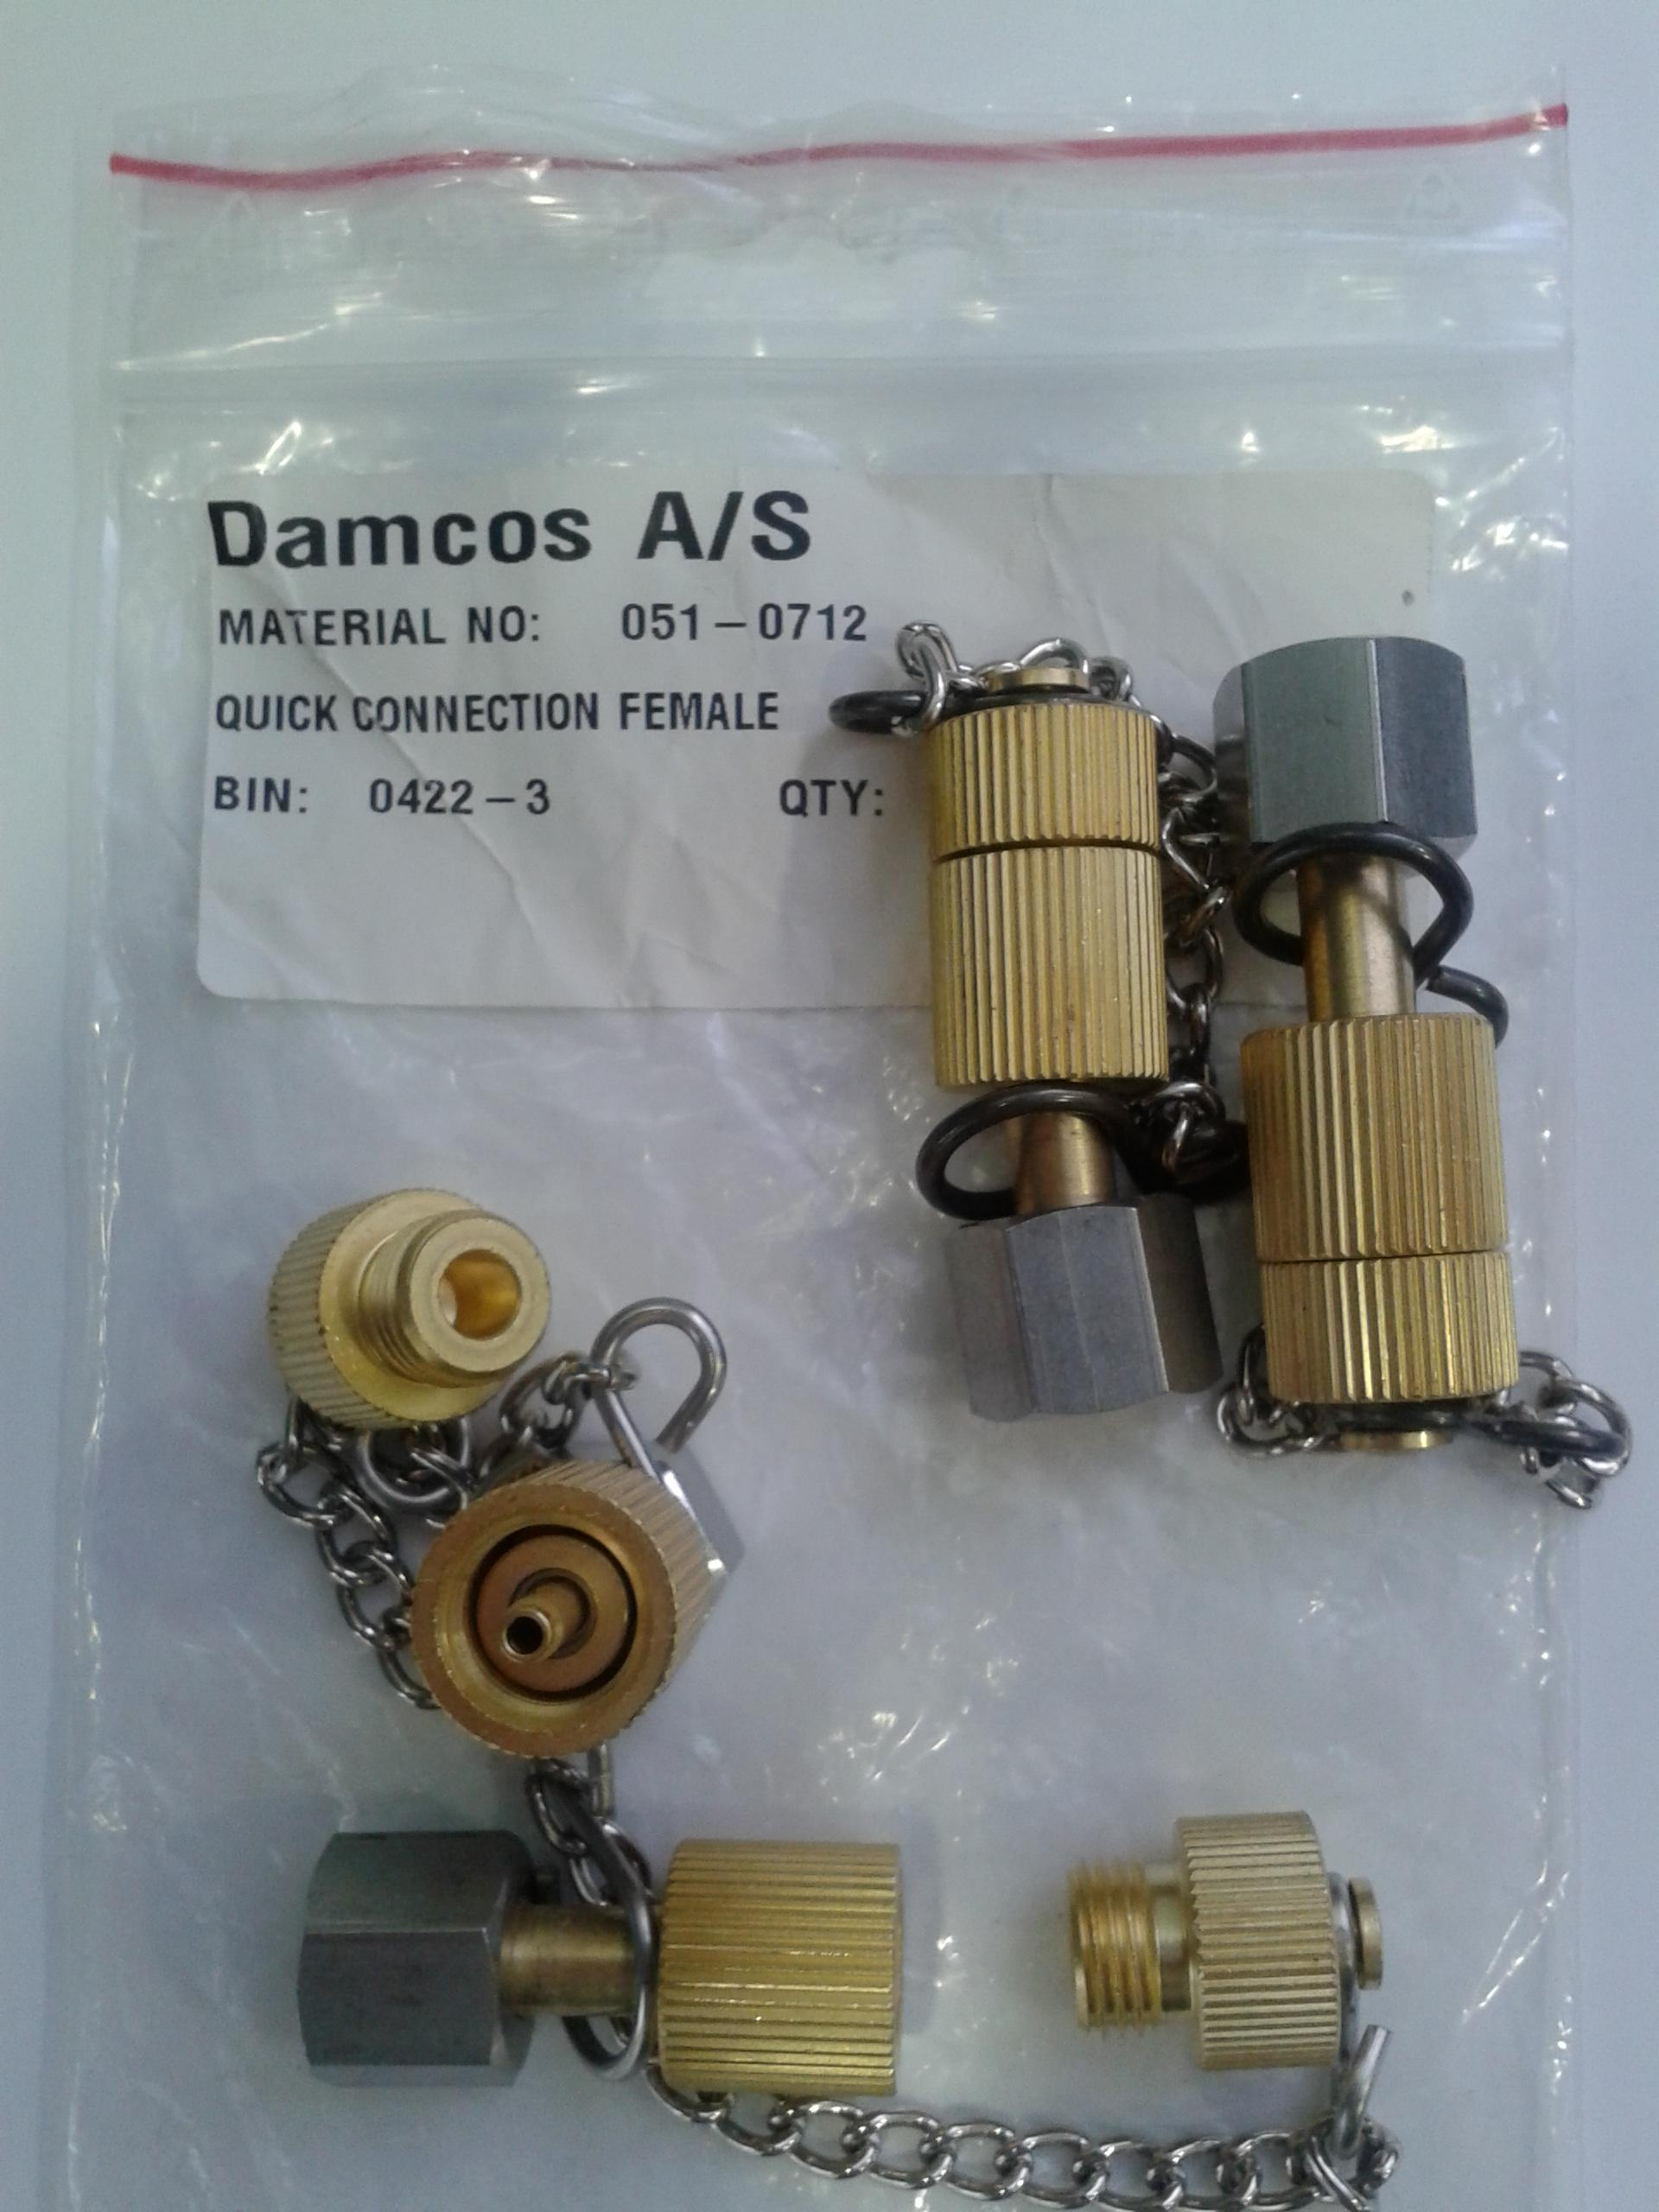 Damcos-PHP-Hose-Connector-Quick-Connection-Female-Part-No.-051-0712